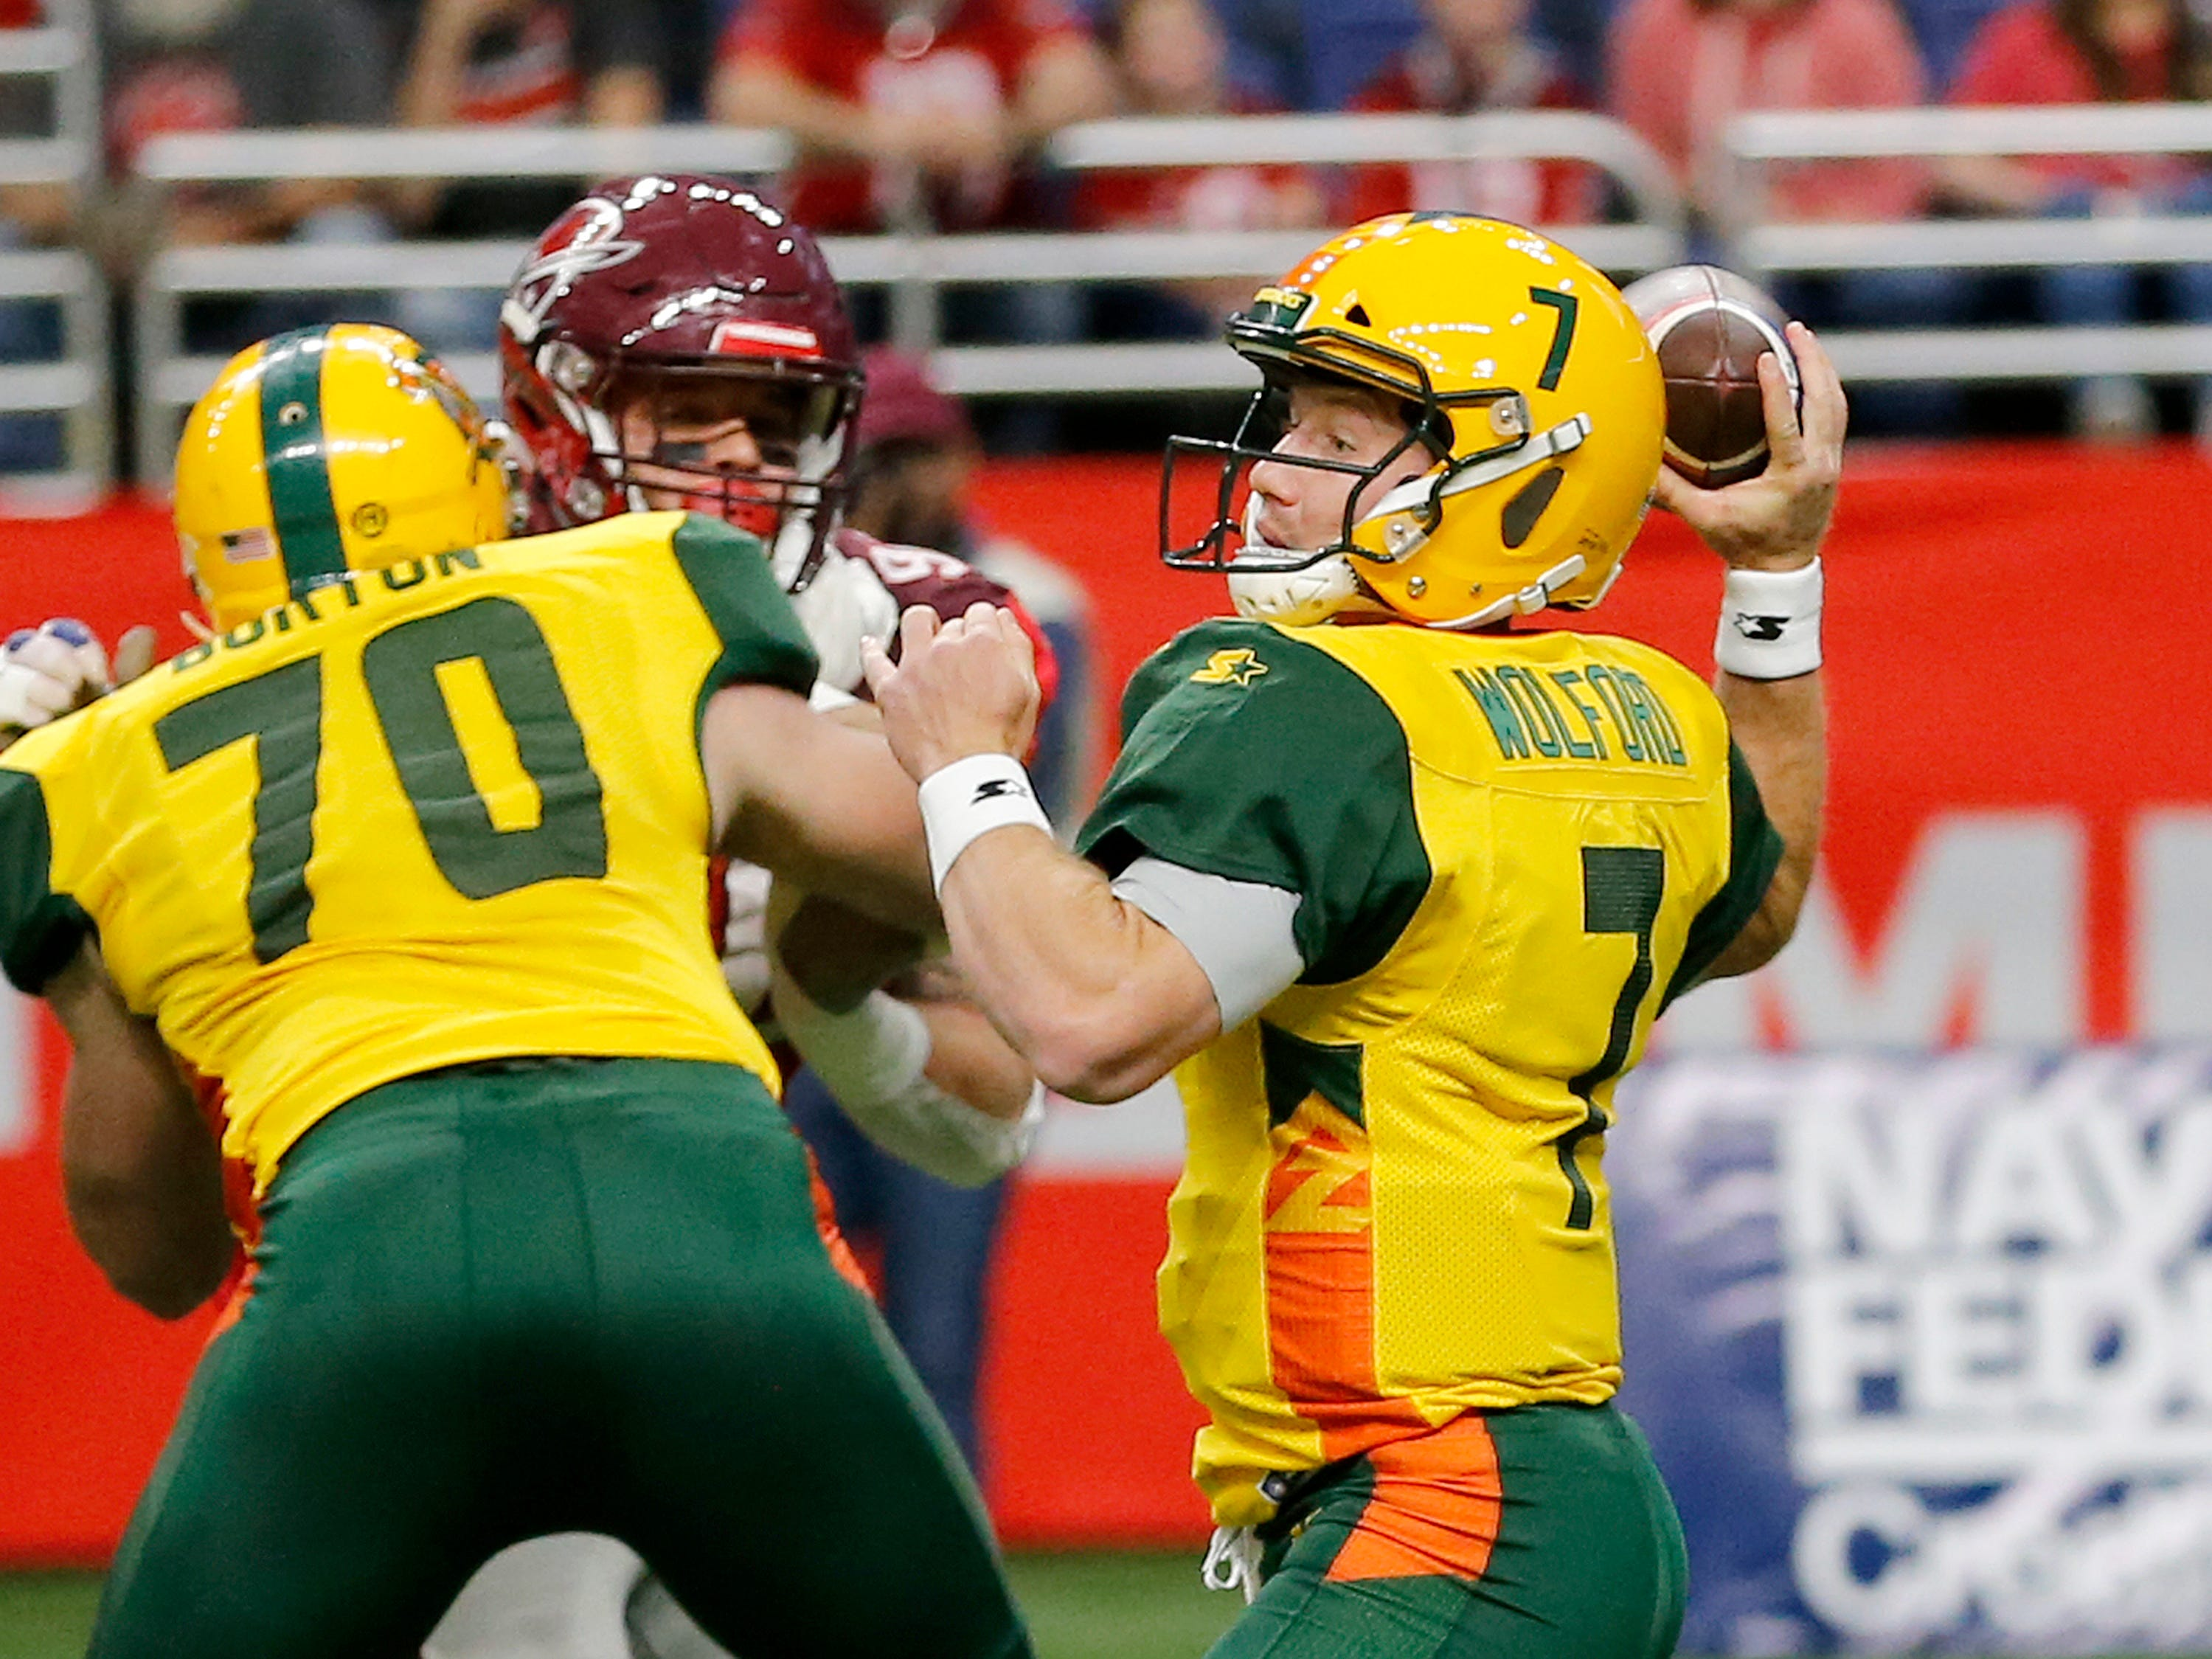 Arizona Hot Shots quarterback John Wolford (7) passes the ball during an Arizona Hotshots at San Antonio Commanders AAF football game, Sunday, March 31, 2019, at the Alamodome in San Antonio.